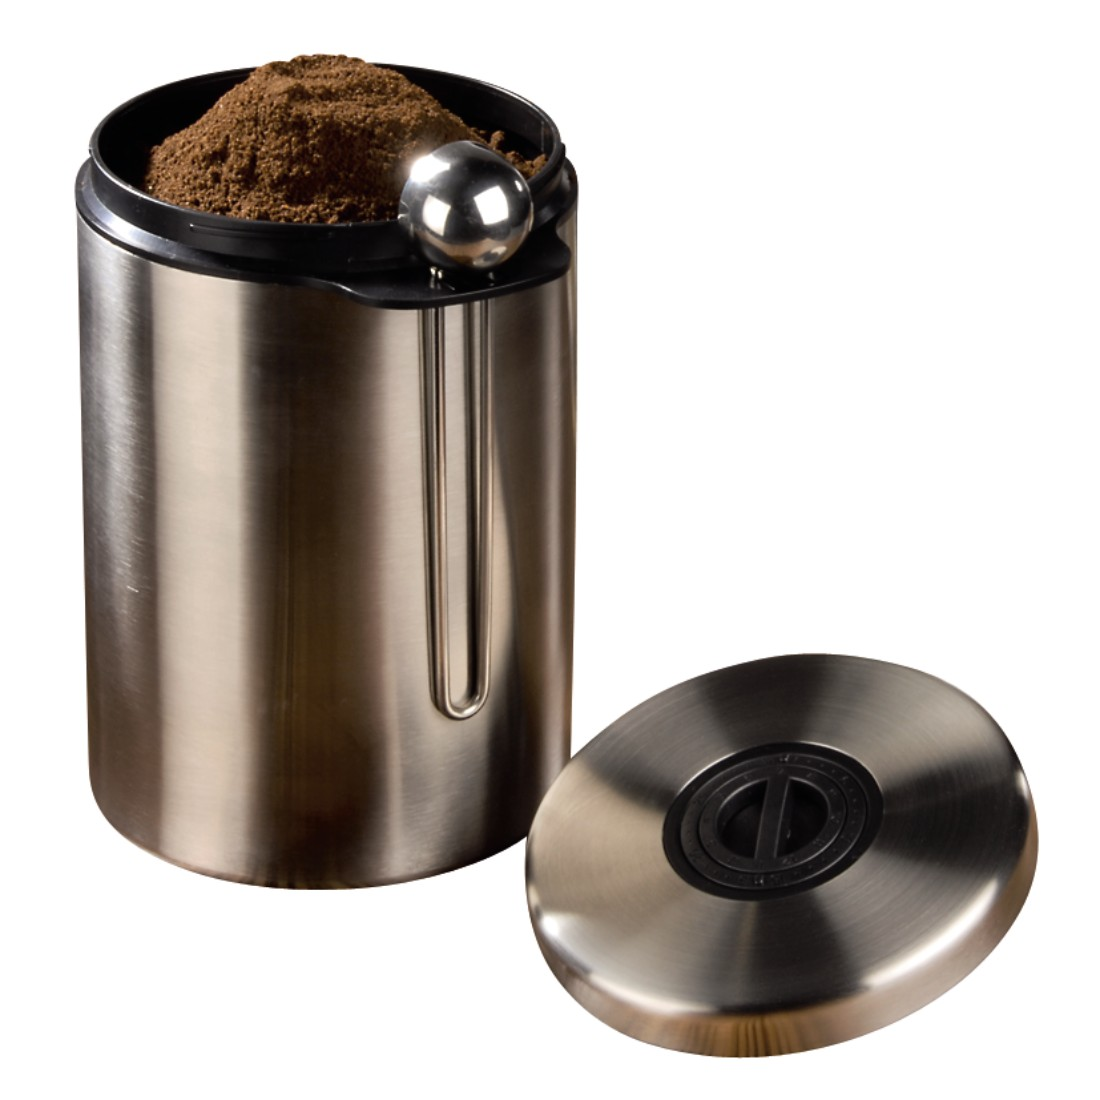 awx5 High-Res Appliance 5 - Xavax, Stainless Steel Container for 1 kg of Coffee Beans